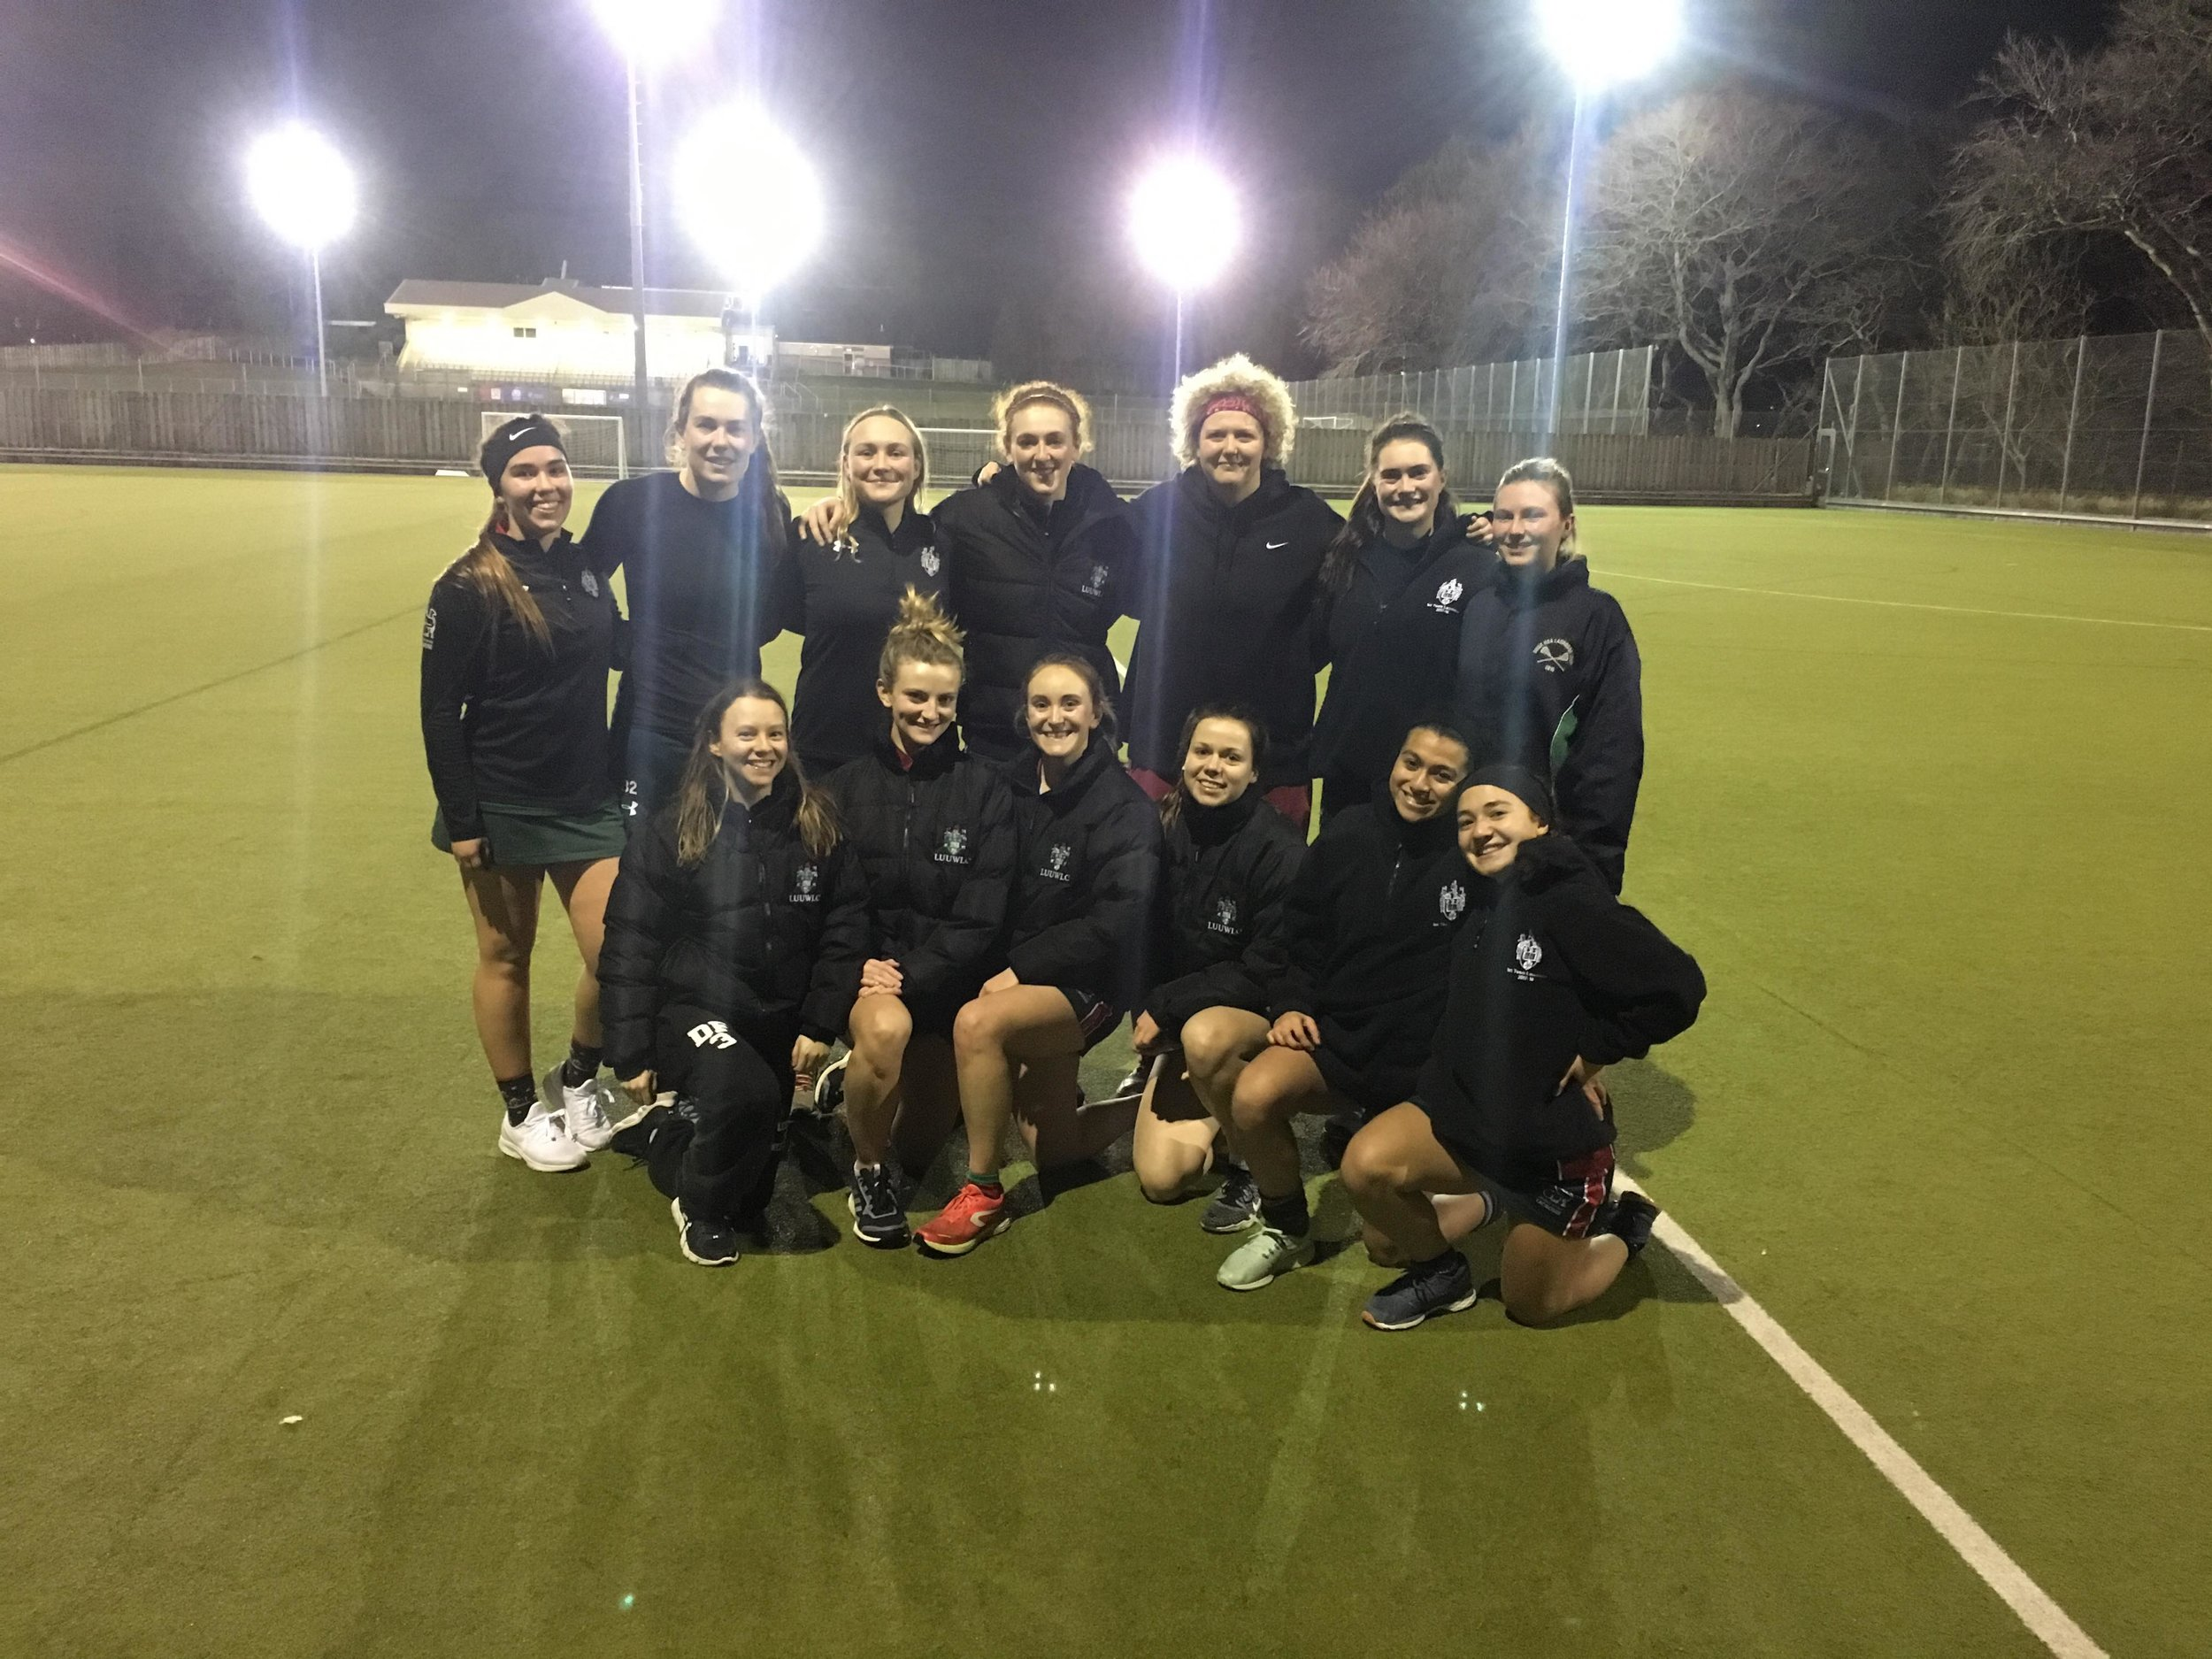 Quarter finals here we come… - A huge congrats to our first team for making it through to the quarter-finals of the cup tournament. The 14 hours on the coach to Aberdeen were definitely worth it to secure a 15-5 win!!!